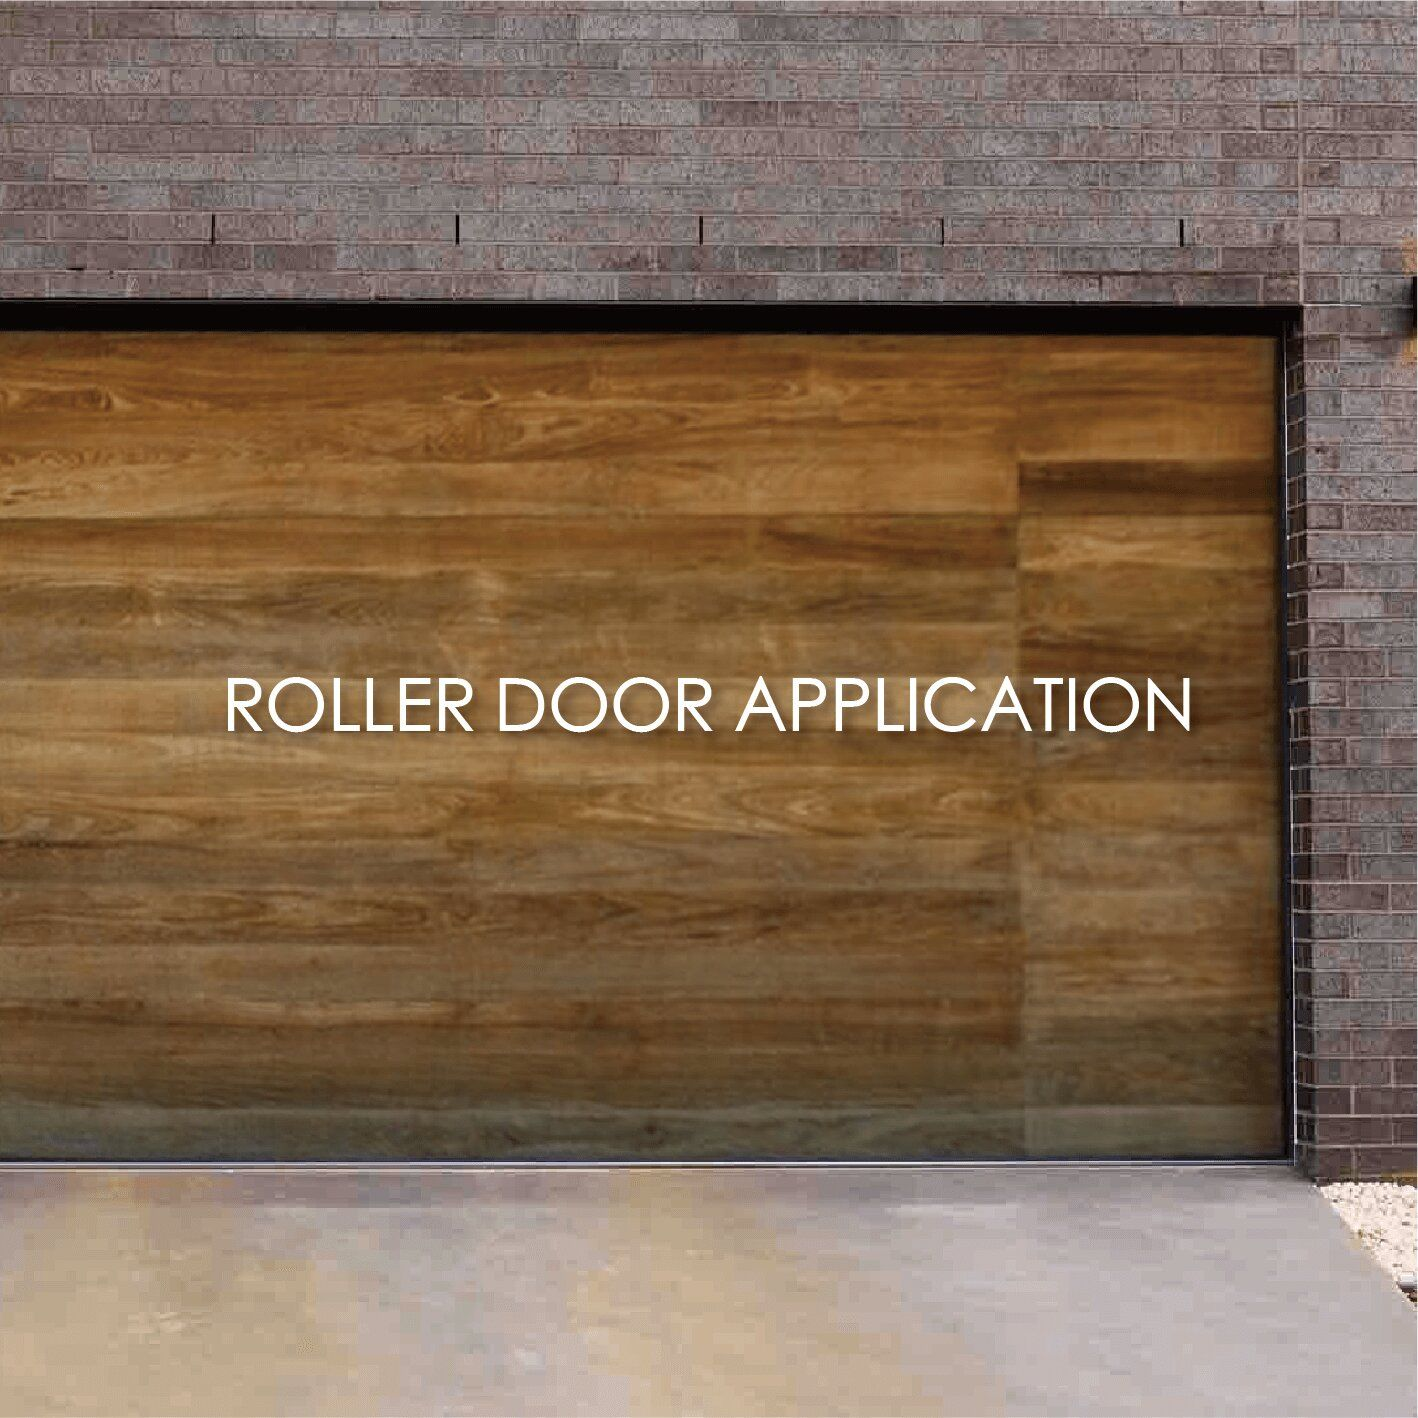 Using laminated metal decorative roll door can create aesthetics and durability